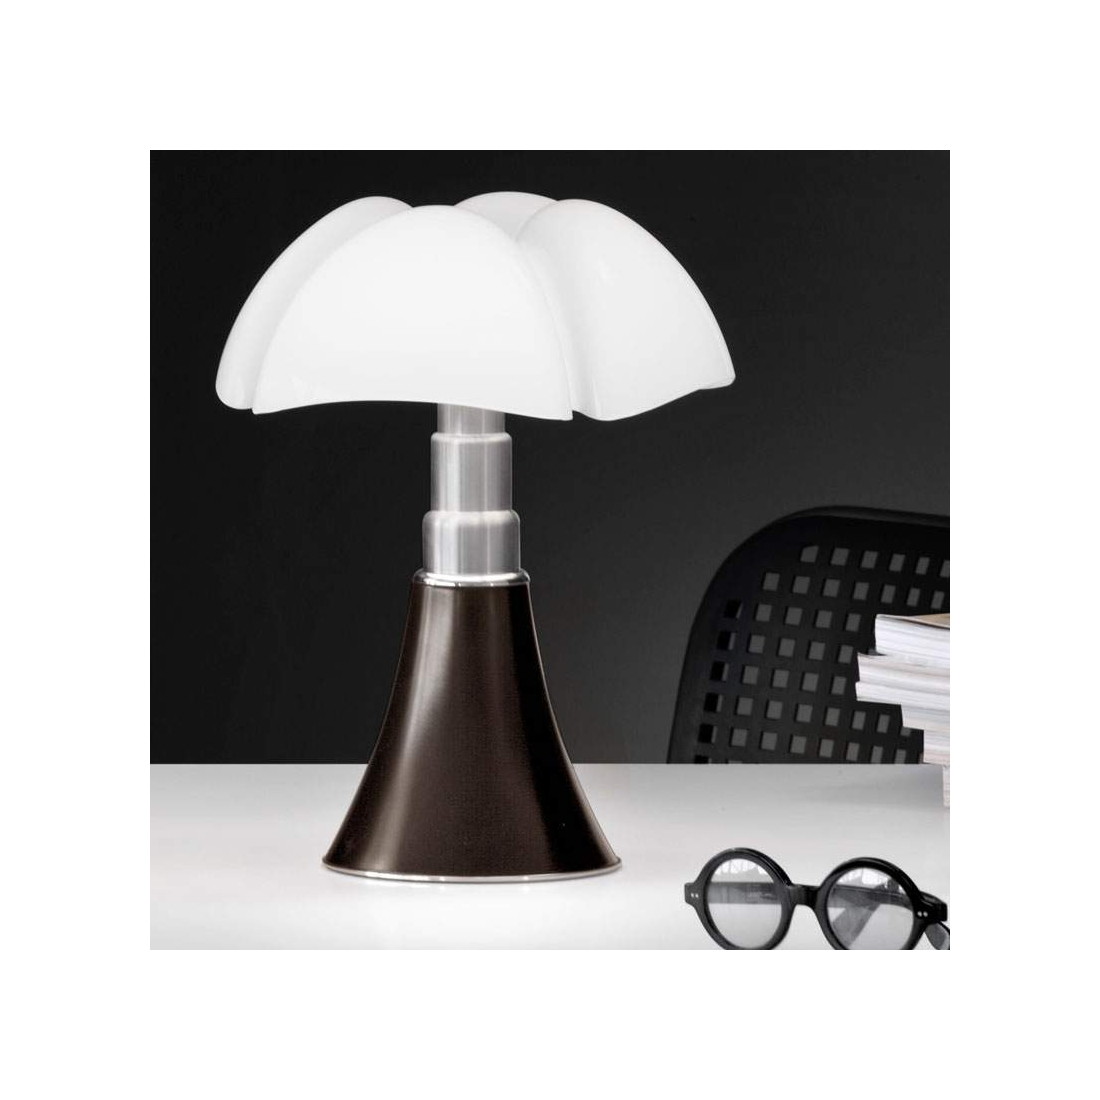 lampe poser martinelli luce pipistrello lampes poser design. Black Bedroom Furniture Sets. Home Design Ideas